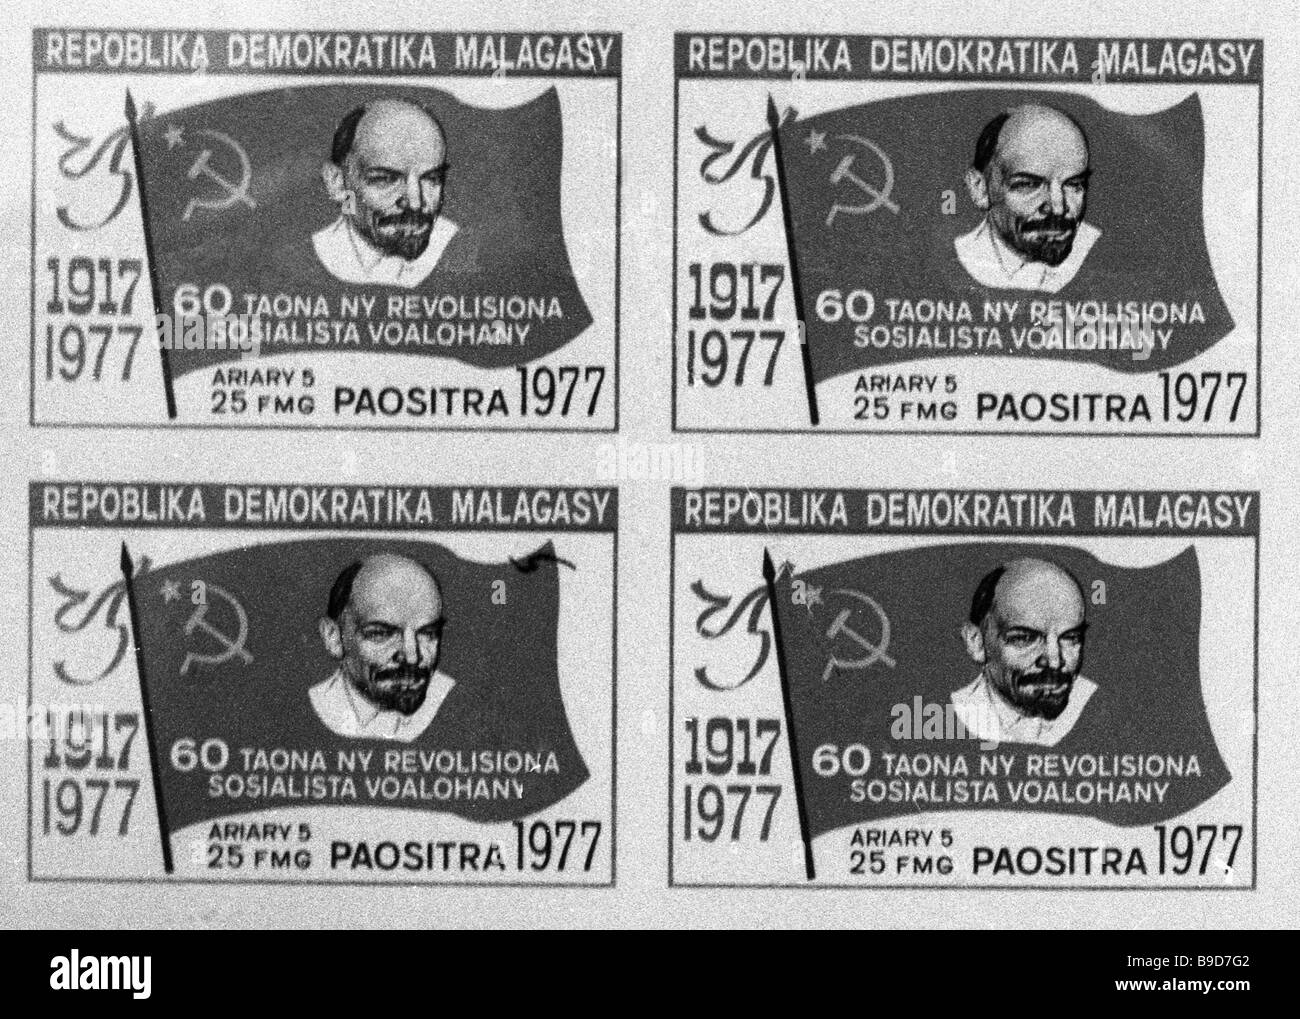 Postage stamps of the Democratic republic of Madagascar issued to mark the 60th Great October revolution anniversary - Stock Image